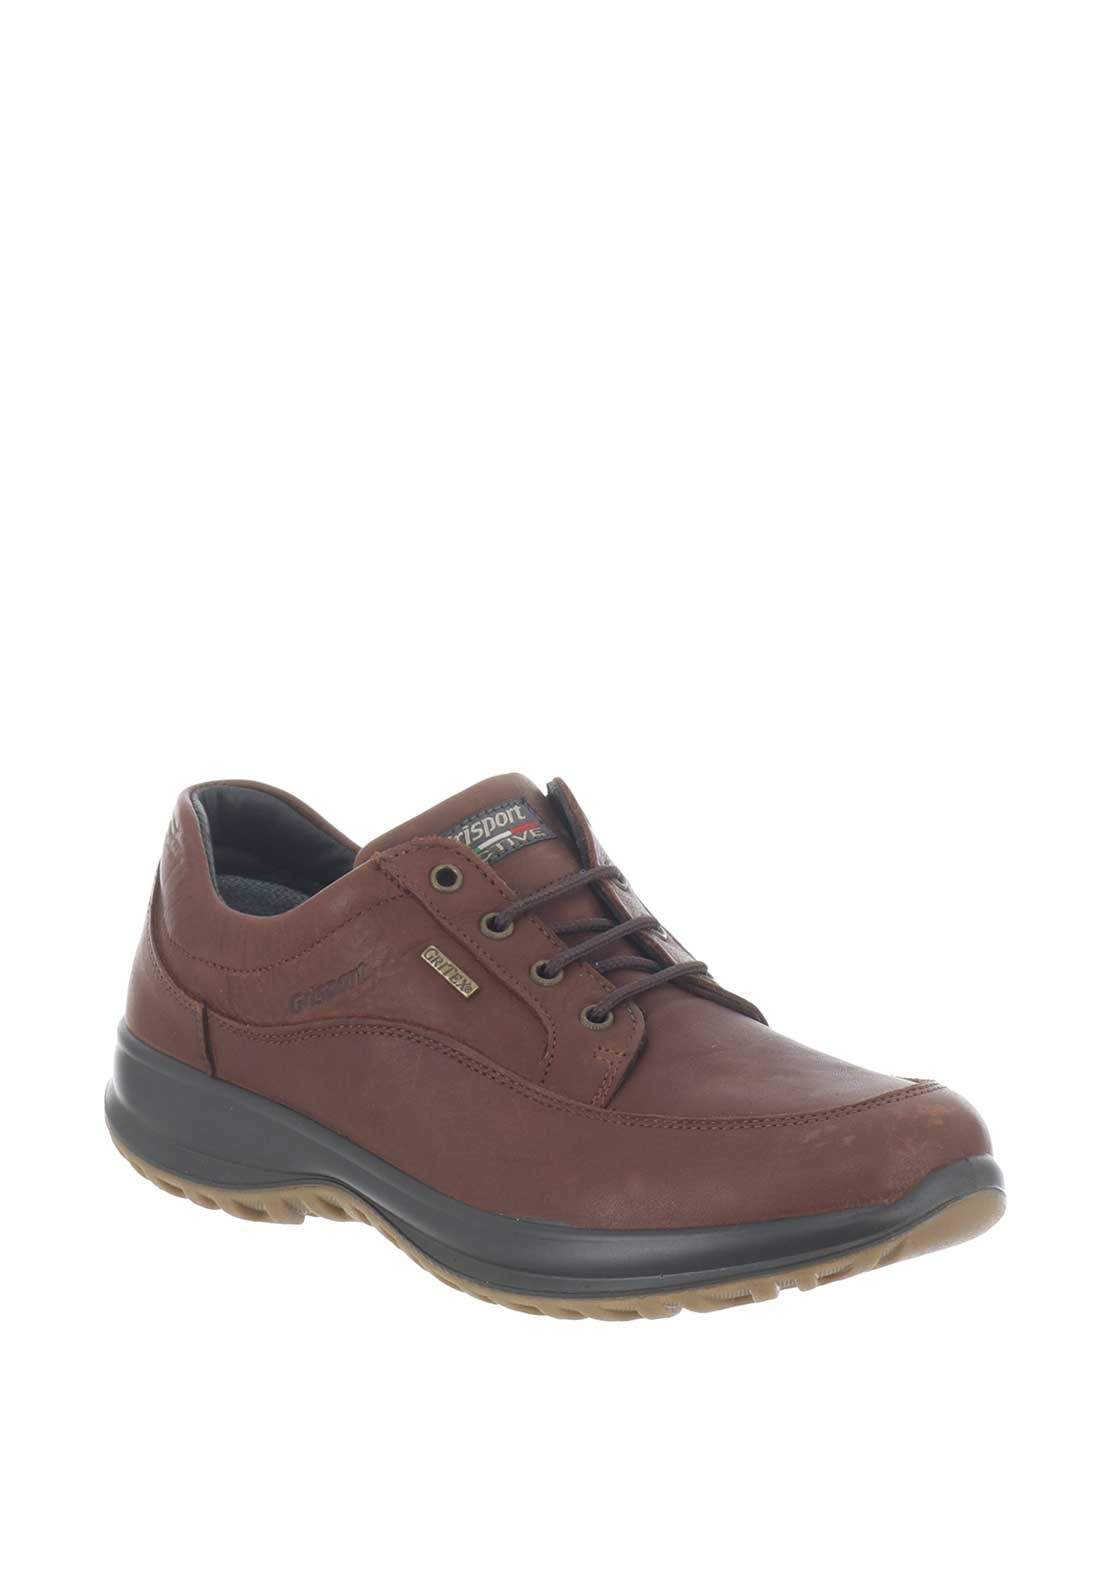 d3aea698a99 Grisport Mens Livingston Walking Shoe, Brown